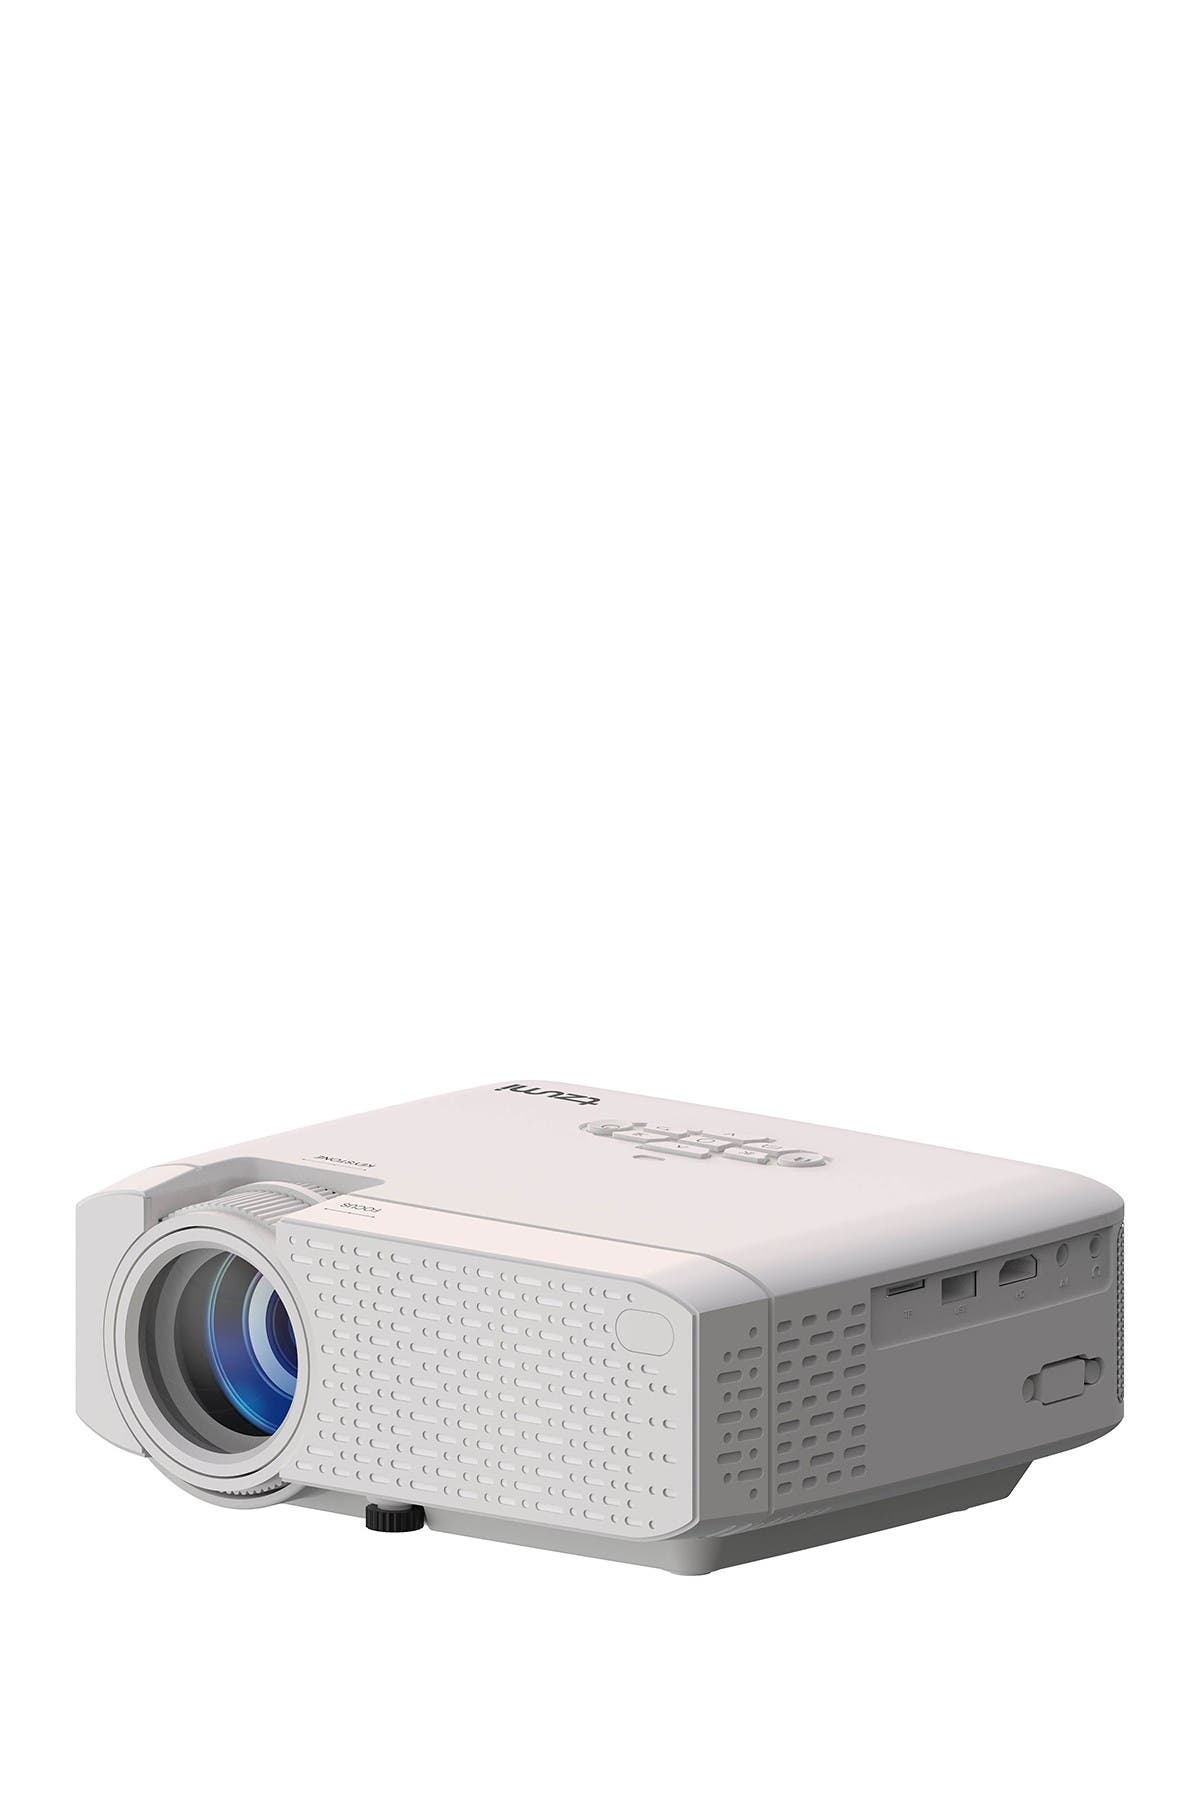 Image of Tzumi GOTheater Projector With Wifi